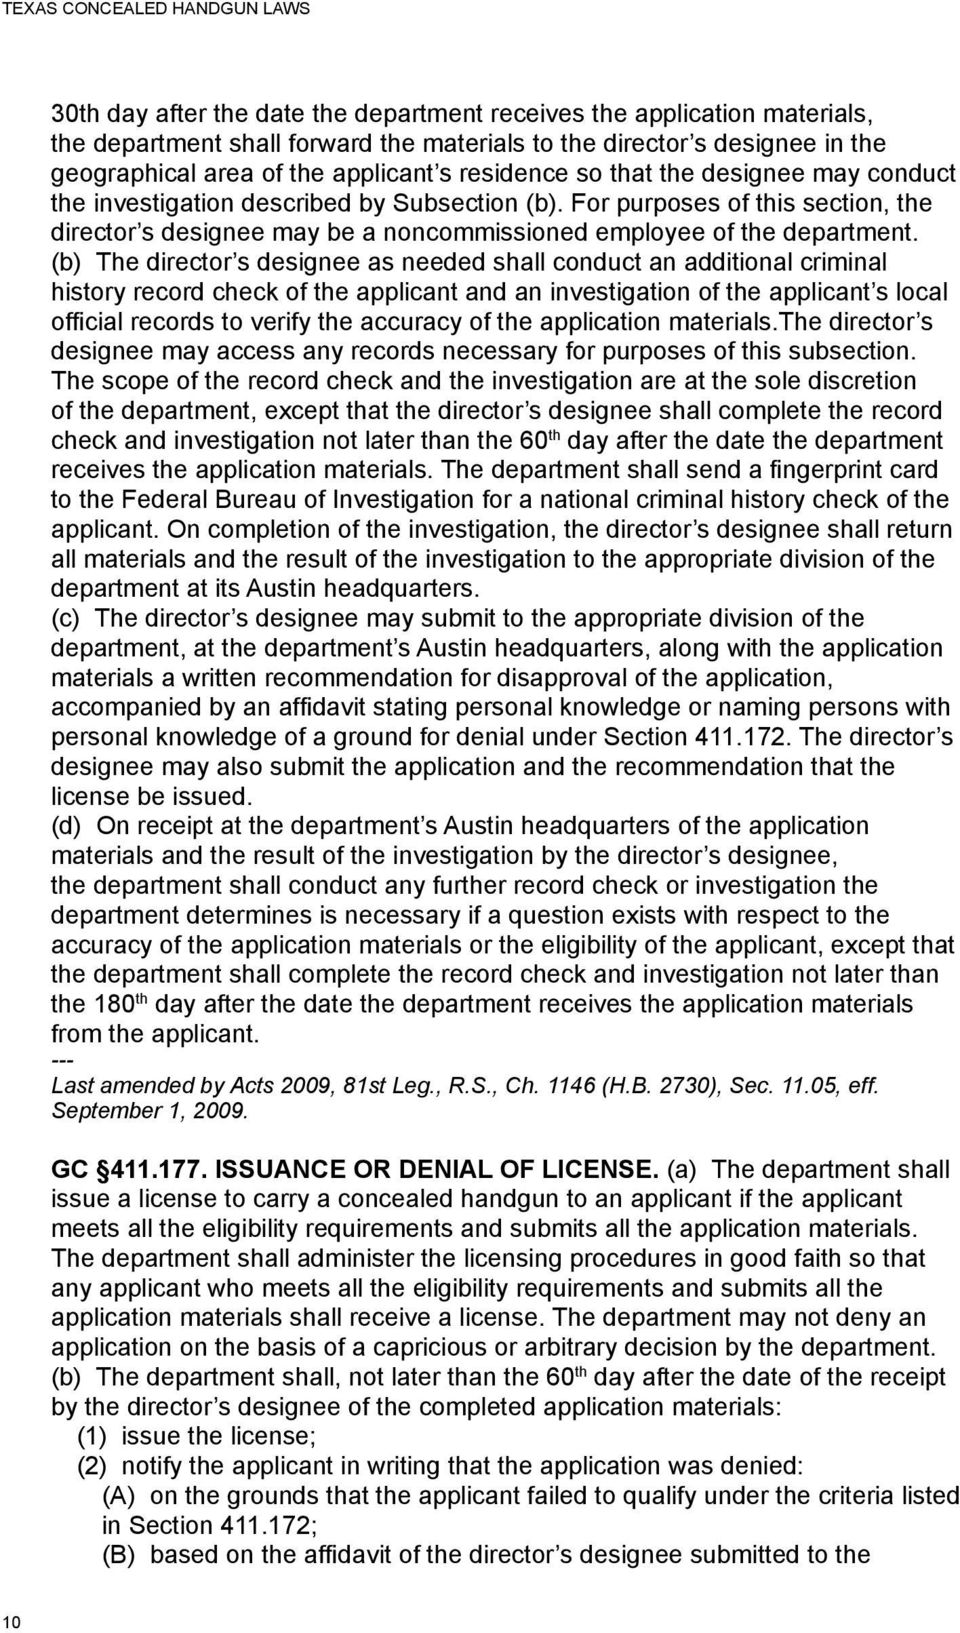 (b) The director s designee as needed shall conduct an additional criminal history record check of the applicant and an investigation of the applicant s local official records to verify the accuracy